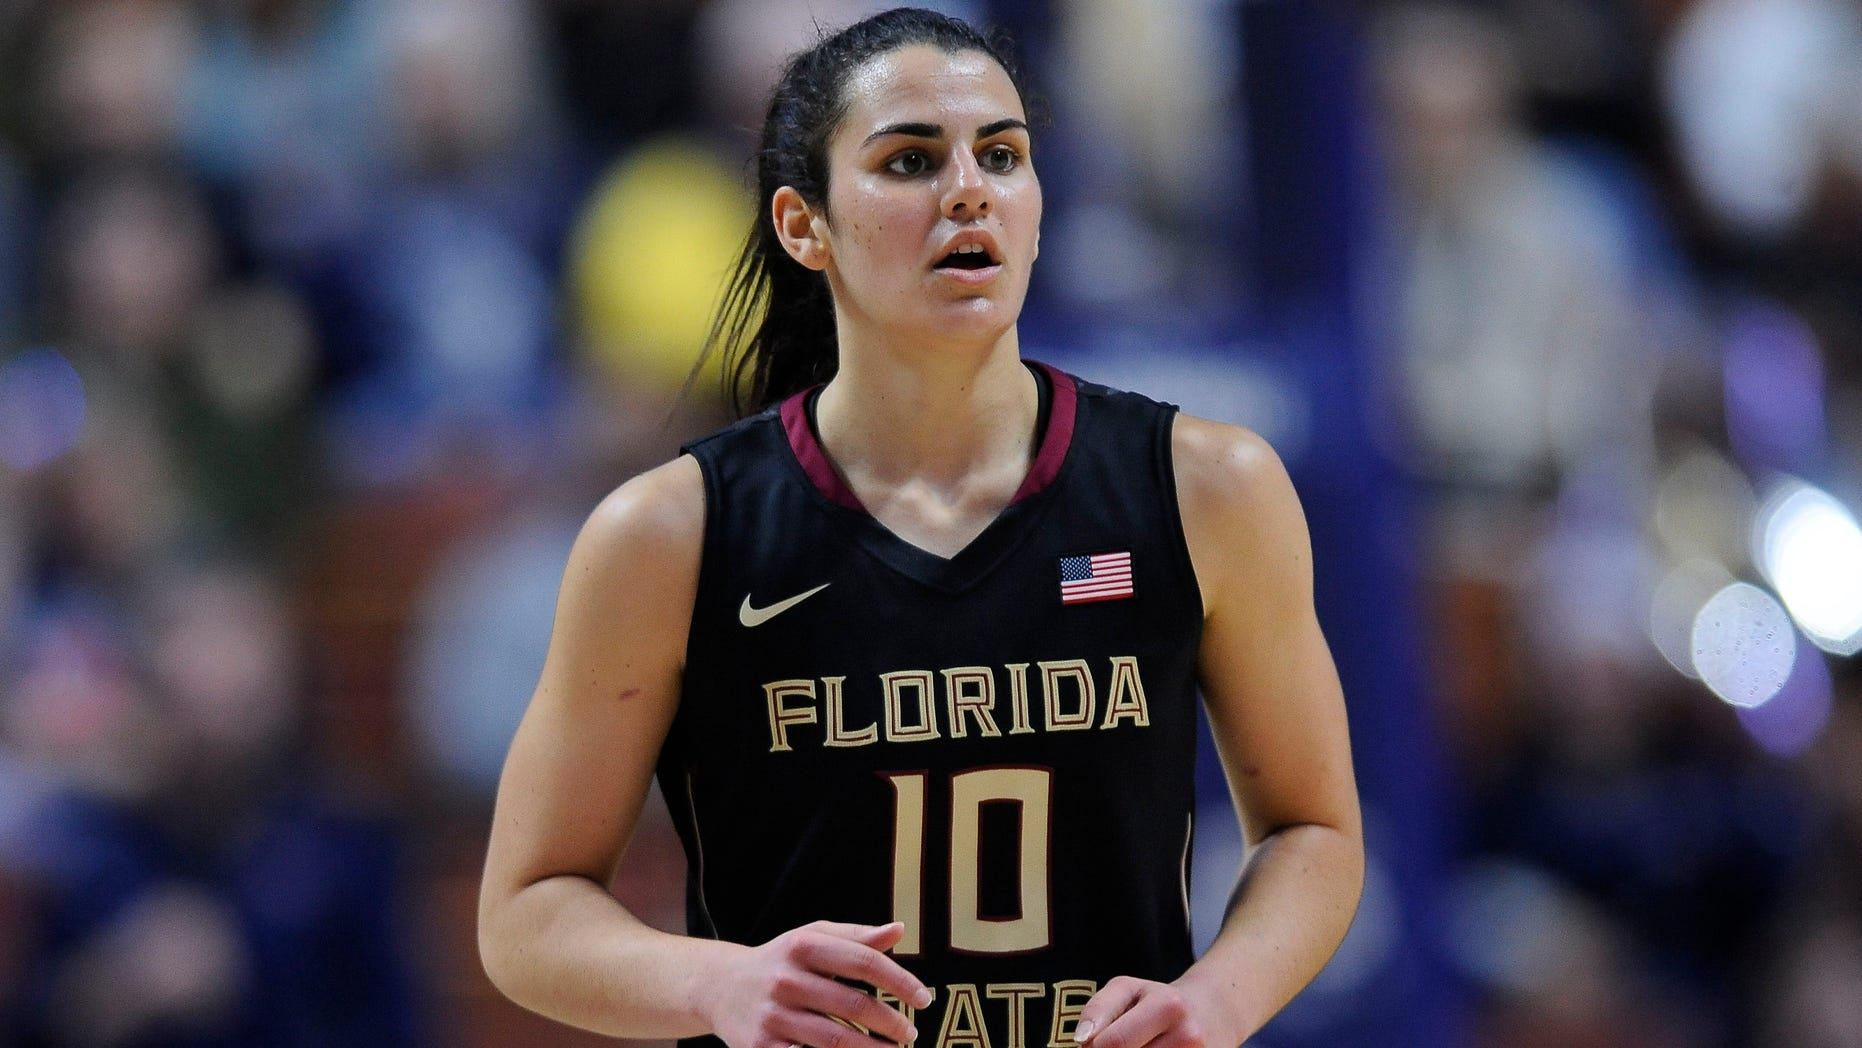 December 11, 2015: Florida State Seminoles Guard Leticia Romero (10) during the game as the Uconn Huskies take on the Florida State Seminoles at the Mohegan Sun Arena in Uncasville, Connecticut. (Photo by Williams Paul/Icon Sportswire) (Photo by Williams Paul/Icon Sportswire/Corbis via Getty Images)